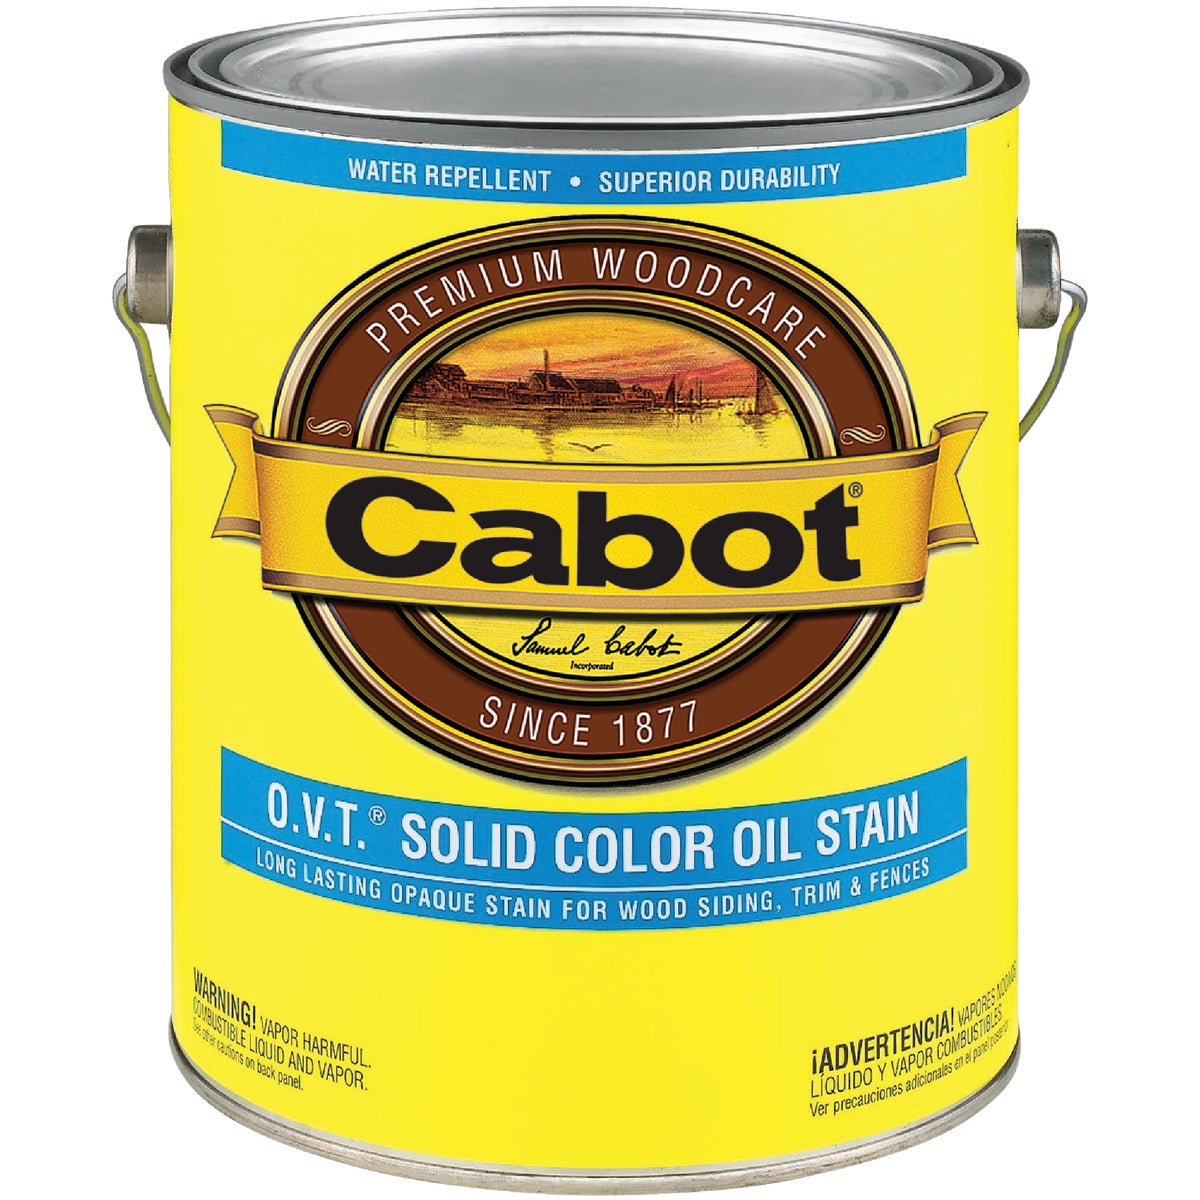 DEEP BS OVT SOLID STAIN - 140.0006707.007 by Valspar Corp